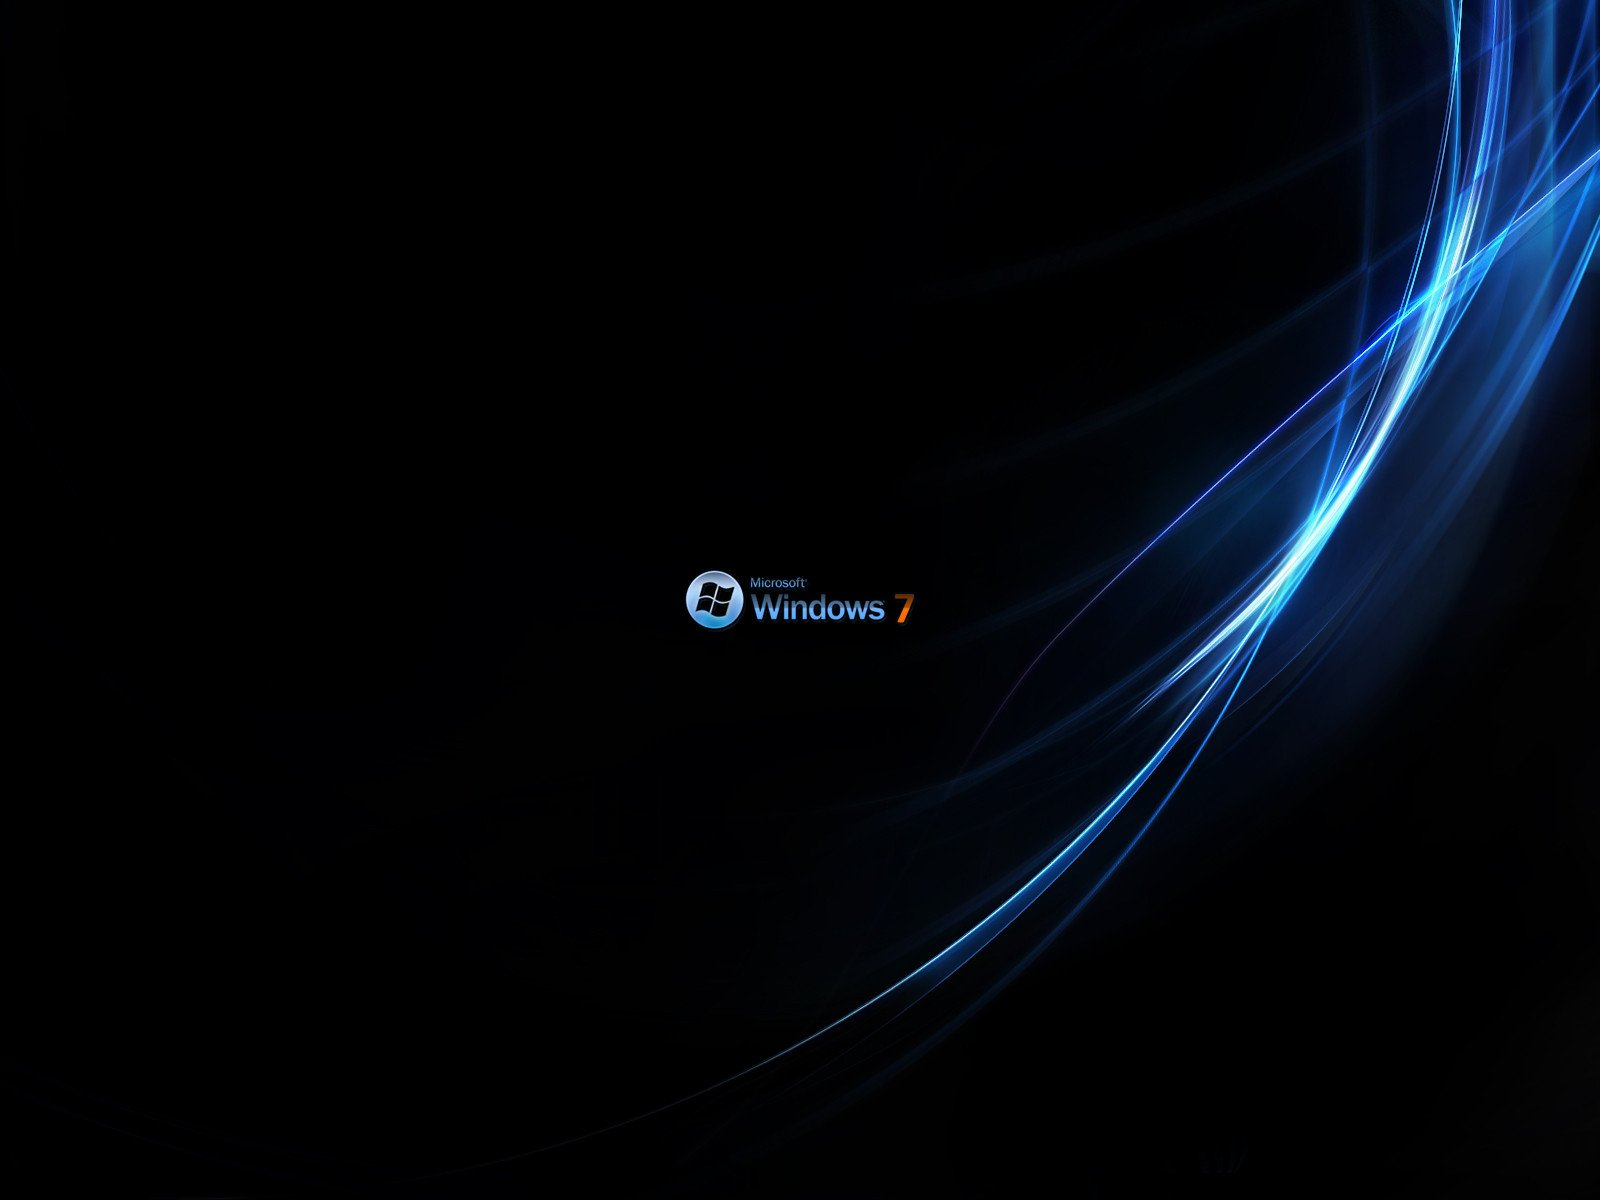 Windows 7 Wallpapers HD 1600x1200